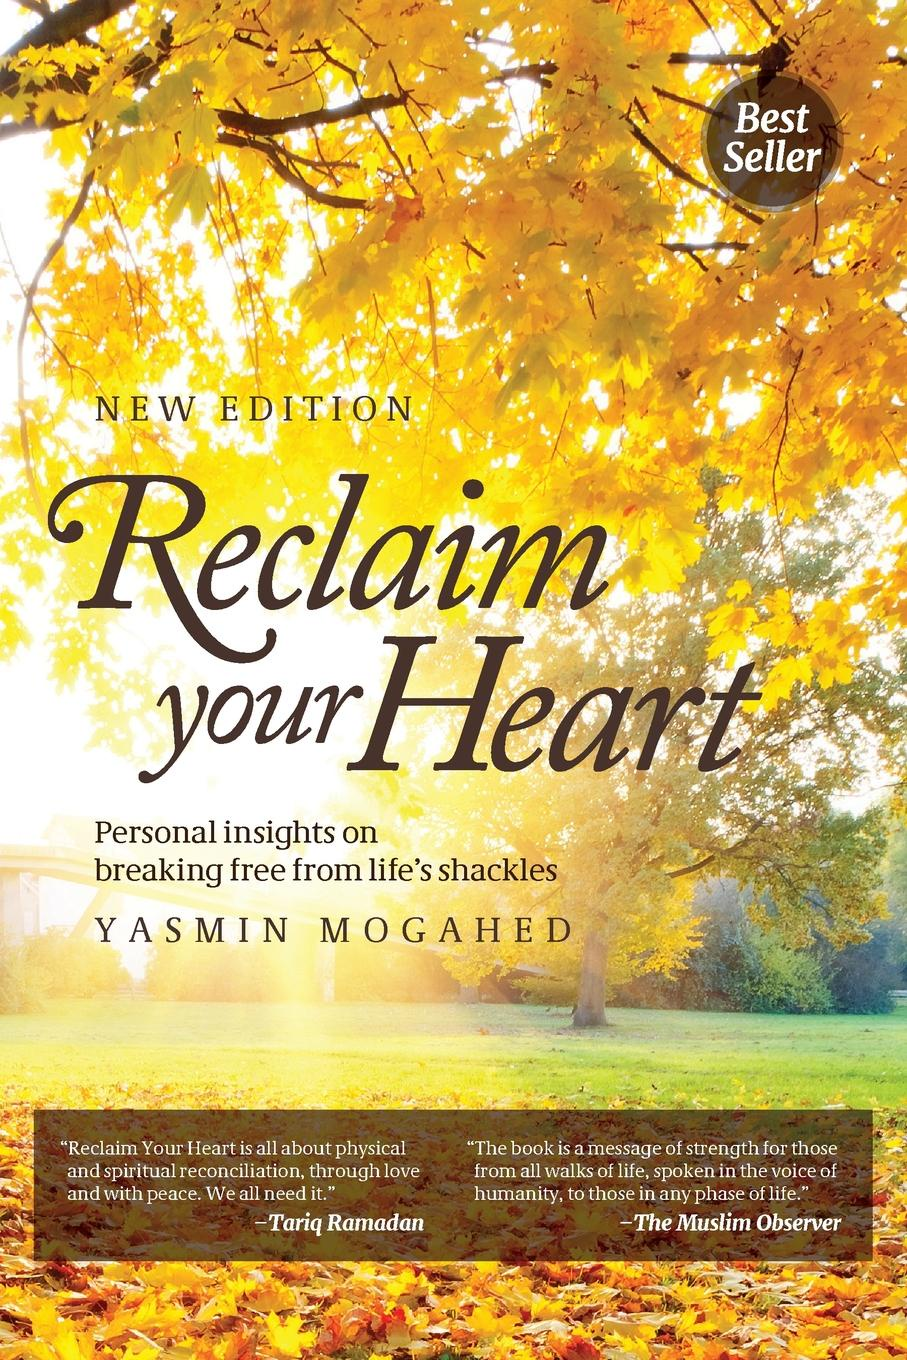 Yasmin Mogahed Reclaim Your Heart creativity in life is directed by the heart